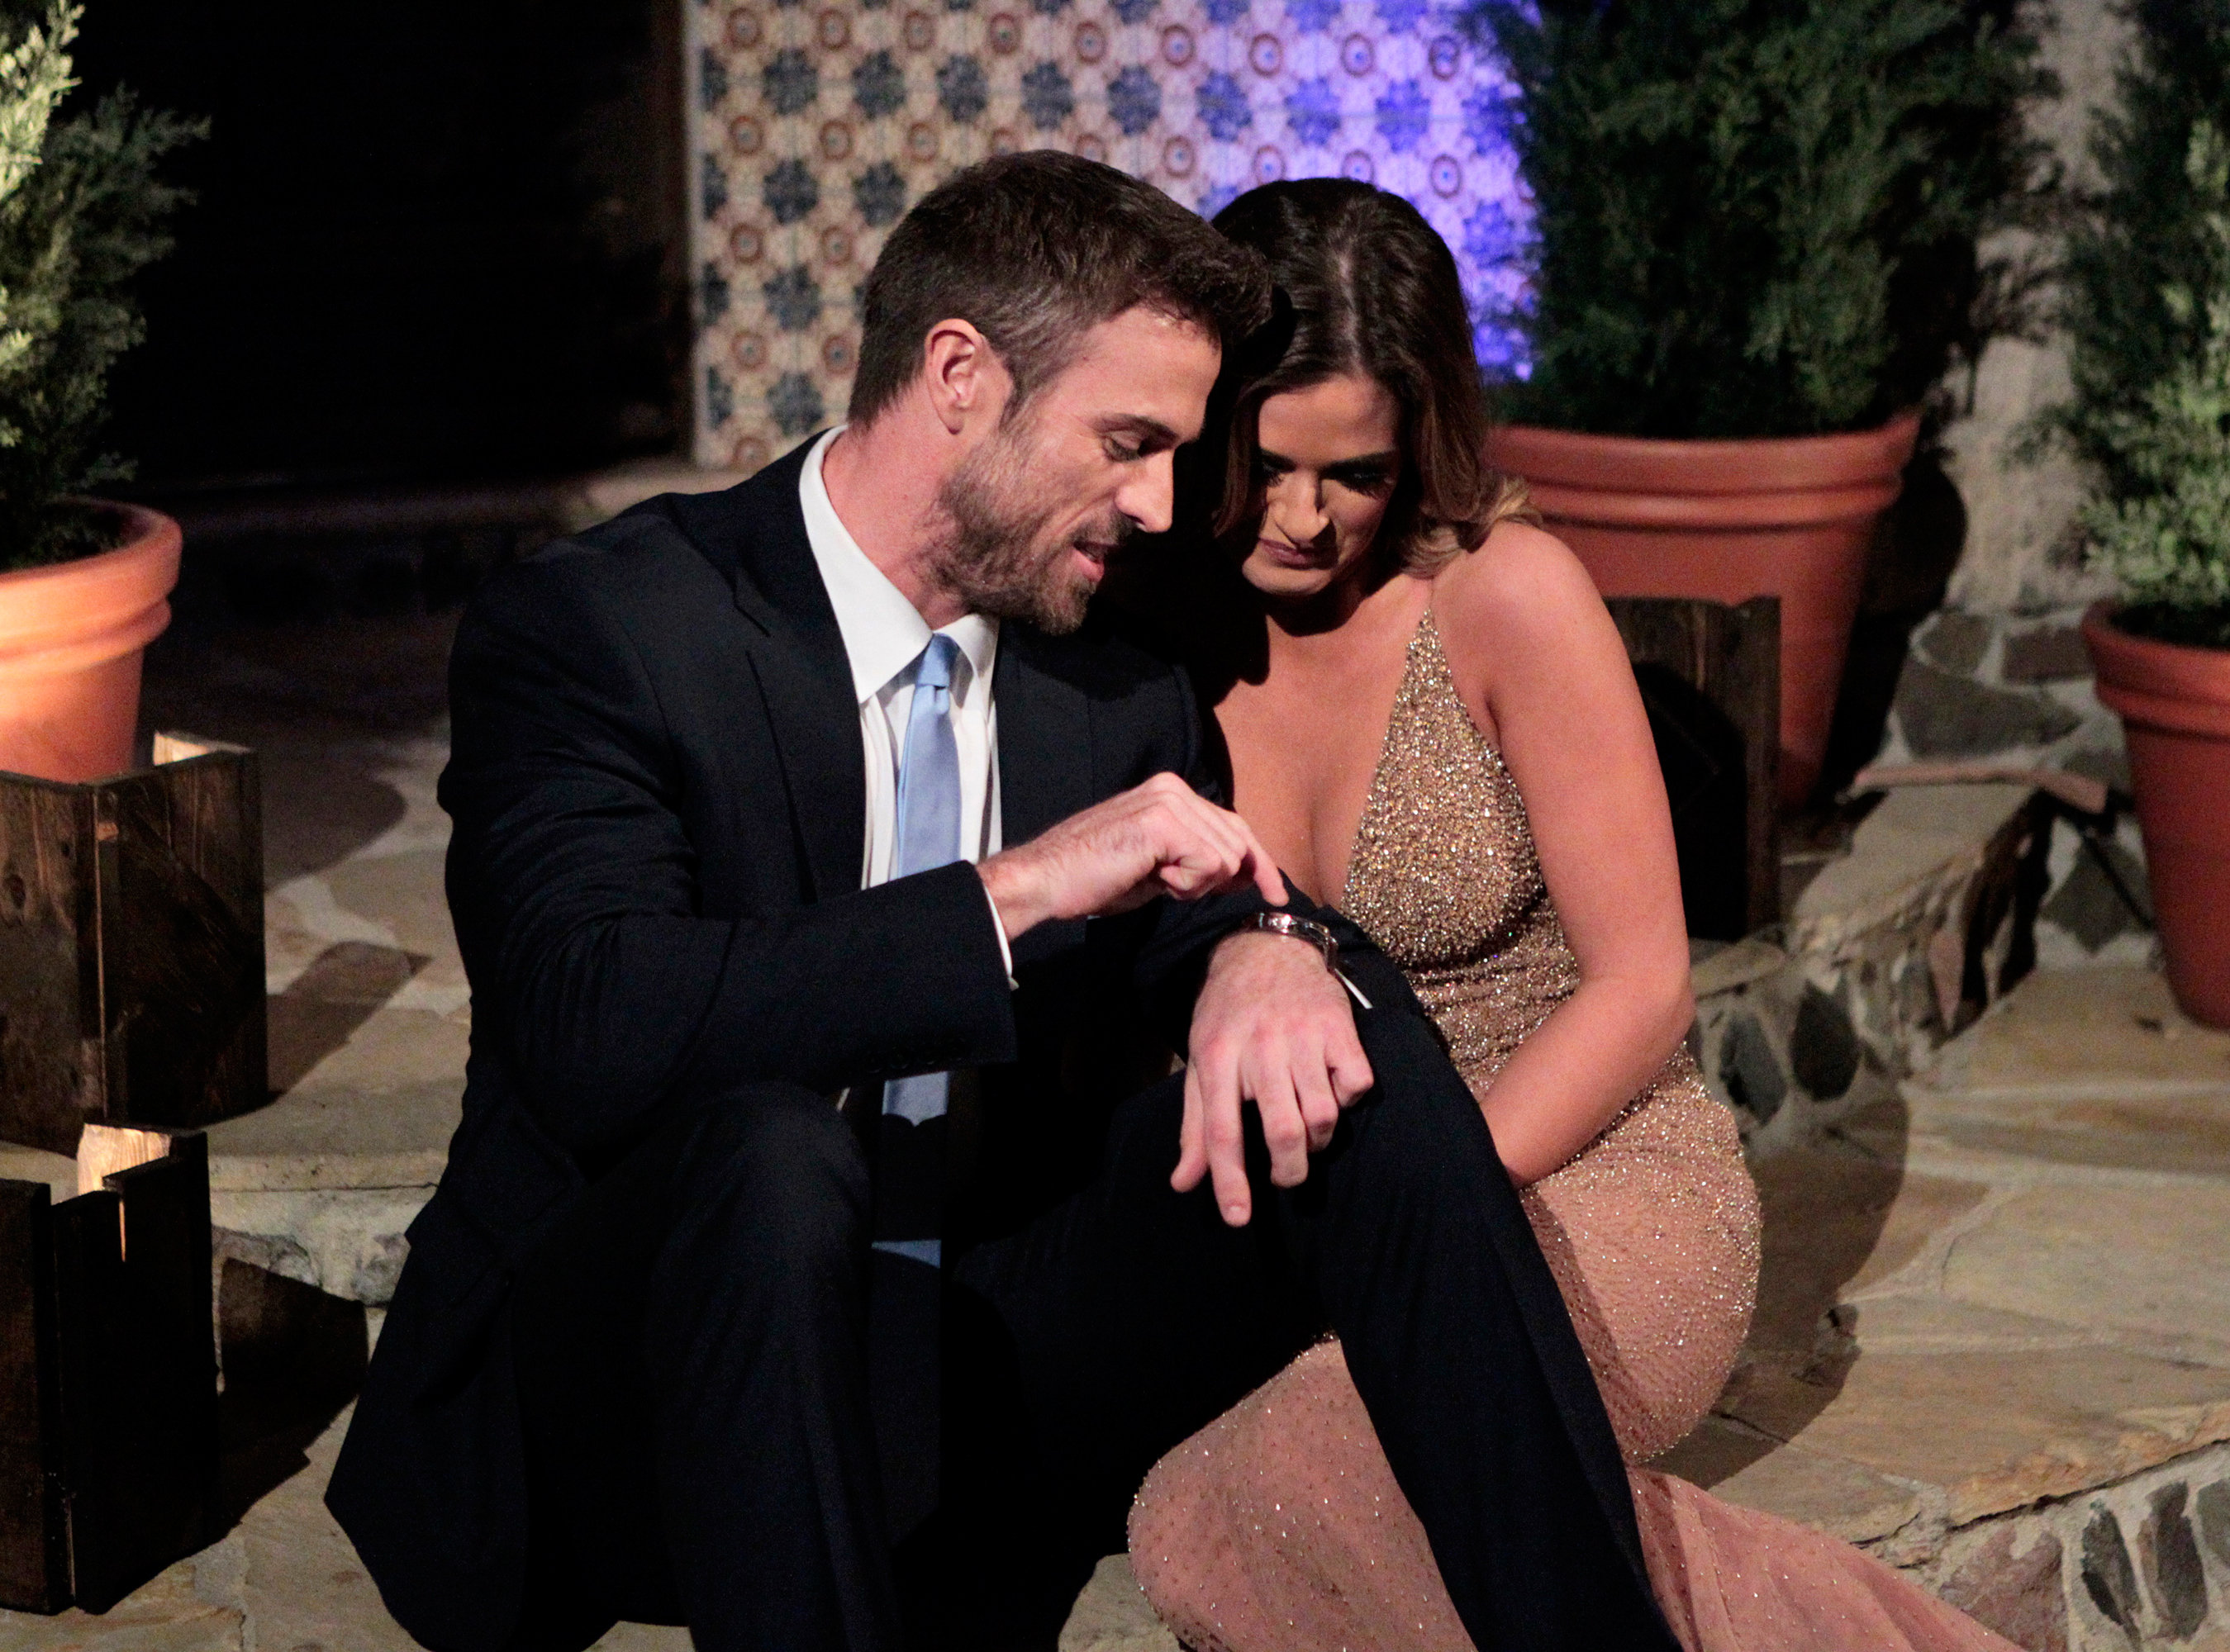 Chad Johnson The Bachelorette - Embed 2